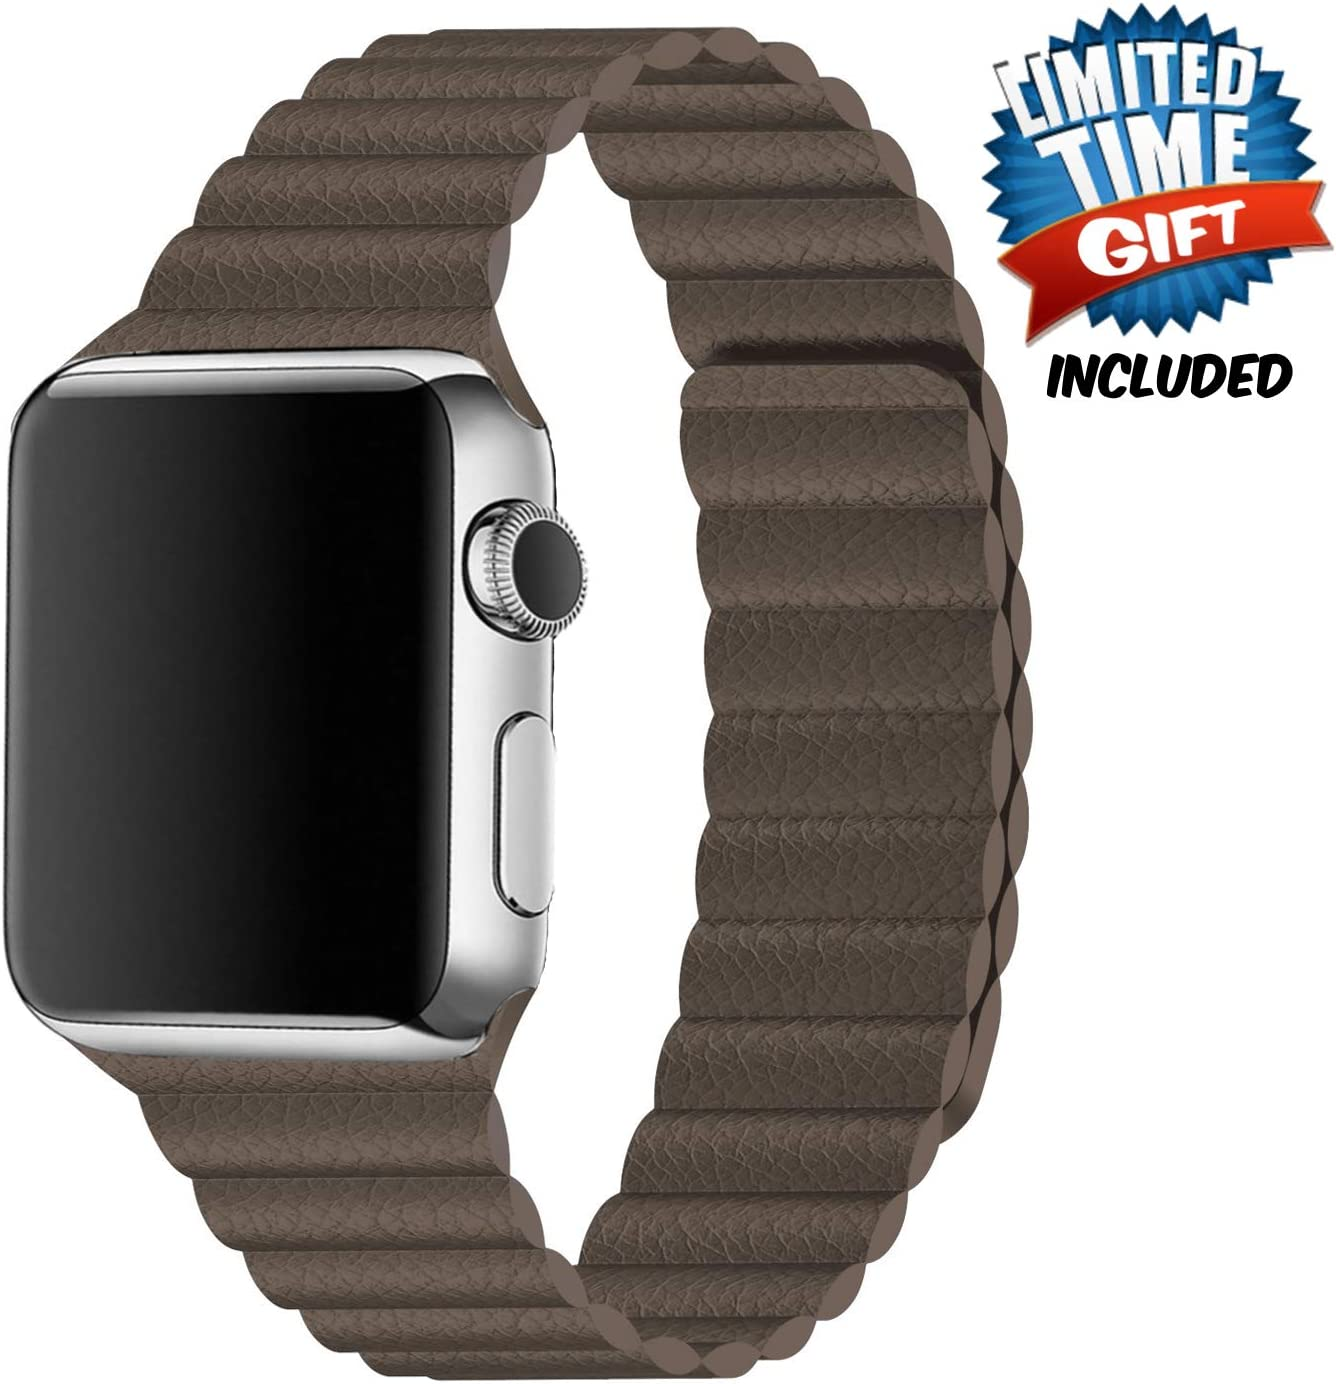 Inno-Huntz Leather Band Compatible with Apple Watch 38mm 42mm Classic Strap Replacement Strap for IWatch Series 5 4 3 2 1 Strong Magnetic Closure Wristband for Men Women (Brown, 38mm/40mm)